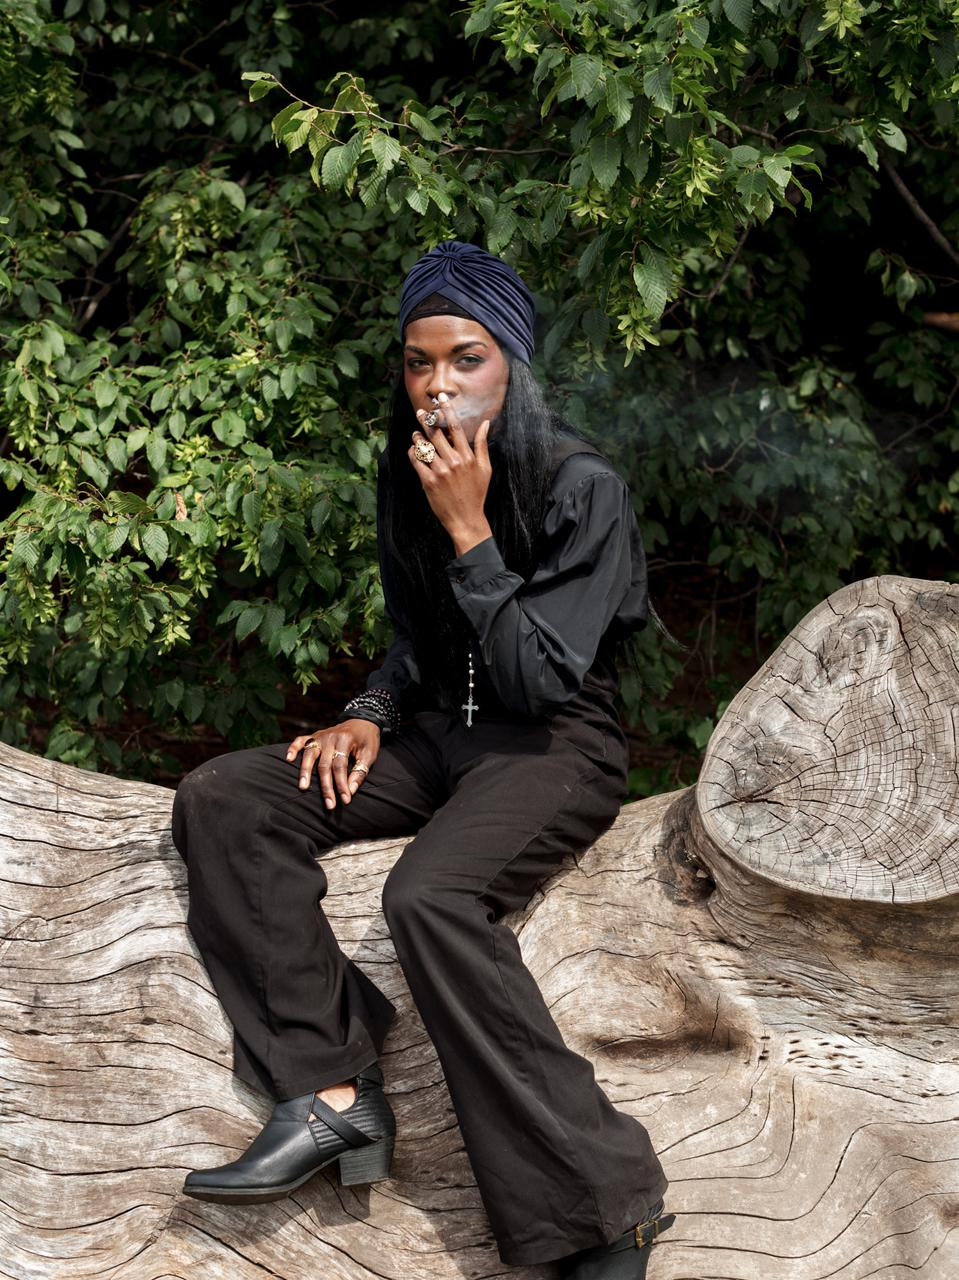 A witch dressed all in black, smoking a cigarette